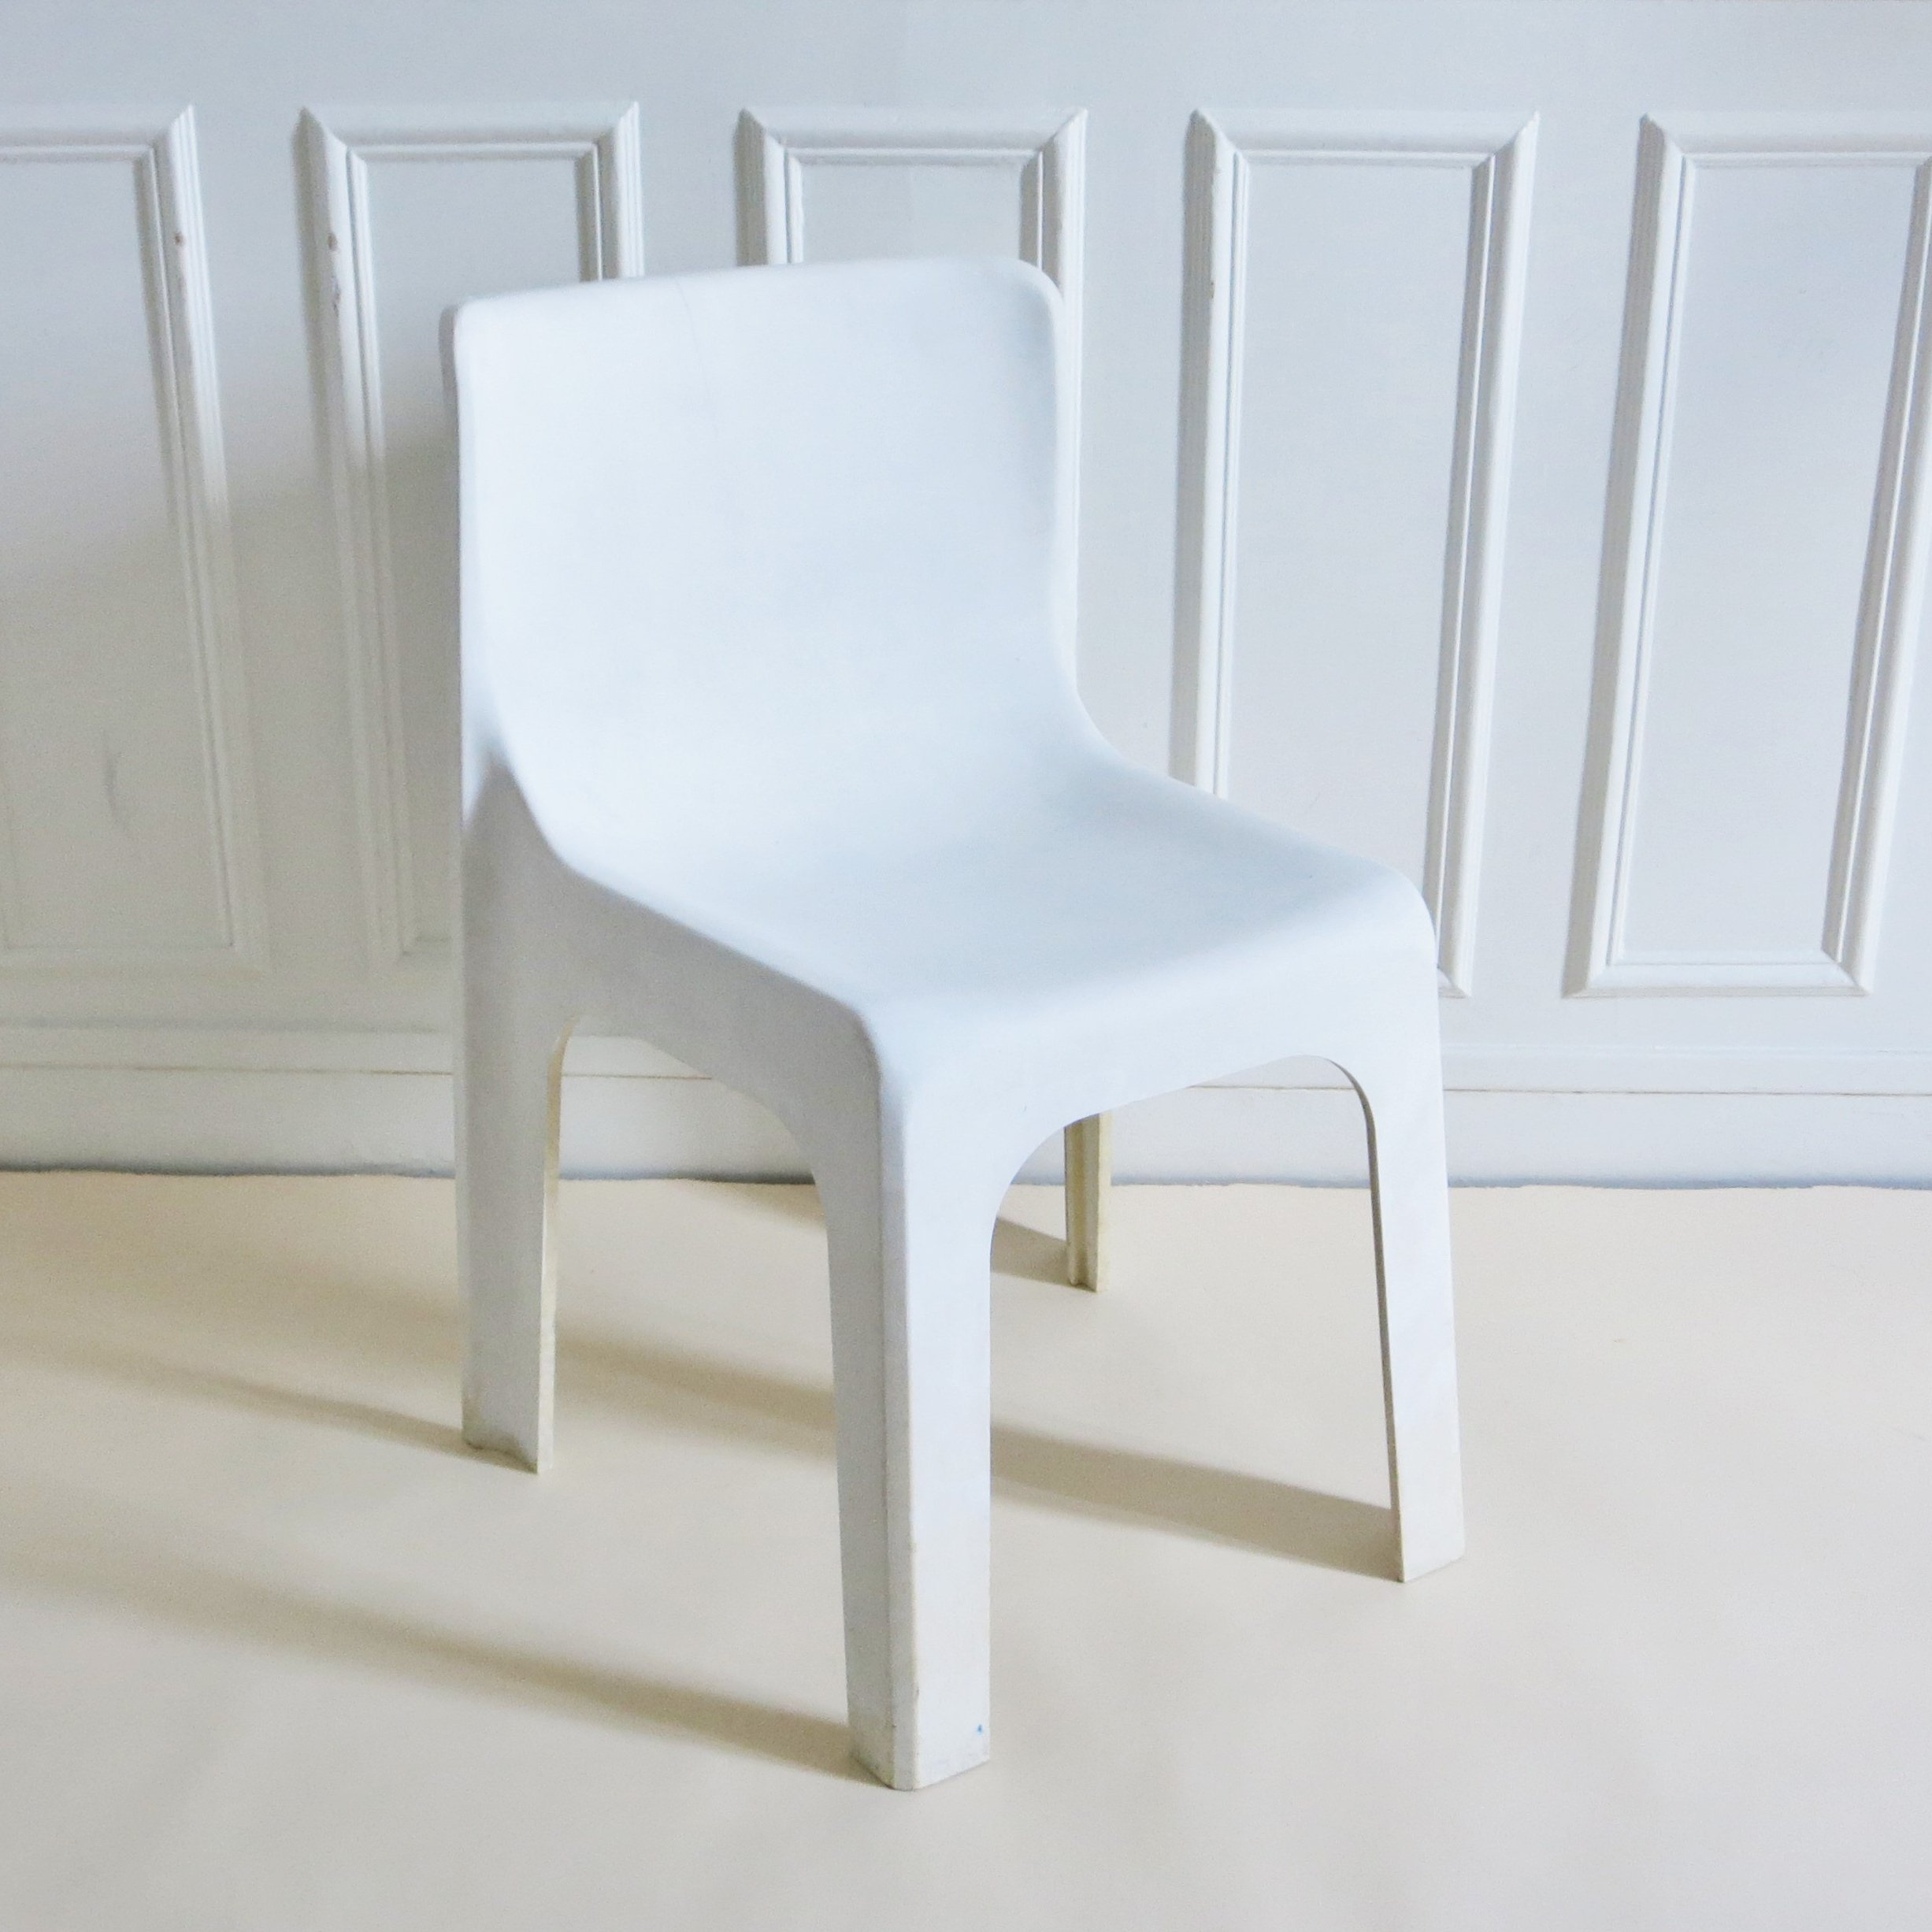 Mobilier France Ligne France Dining Chair By Étienne Fermigier For Mobilier De France 1970s